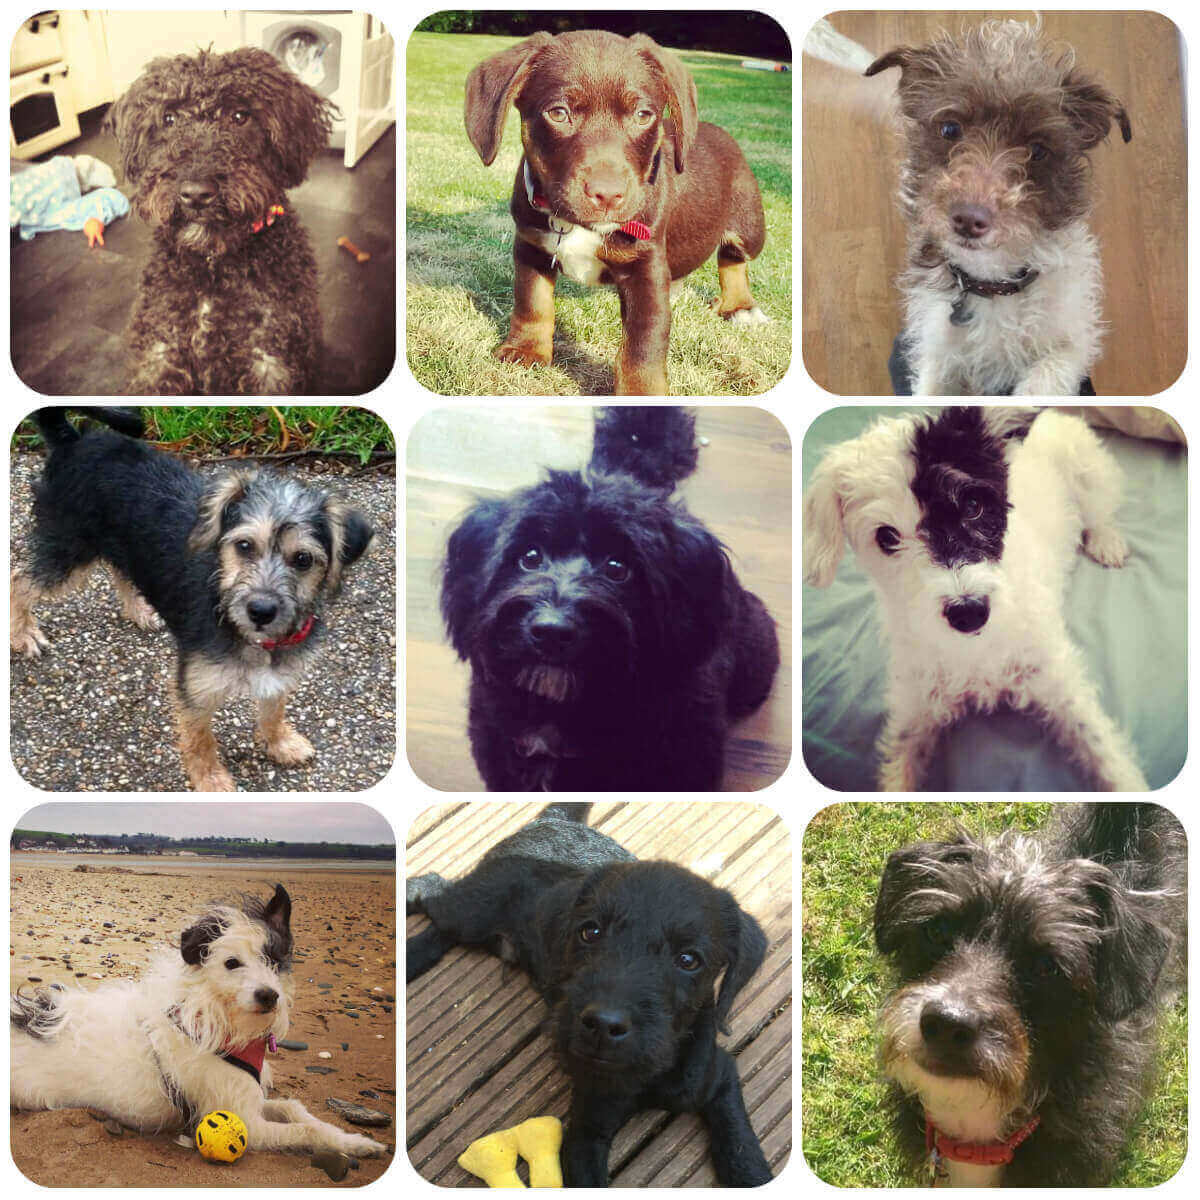 A collage of jackapoo dogs and puppies, part of BorrowMyDoggy's guide to dog breeds.